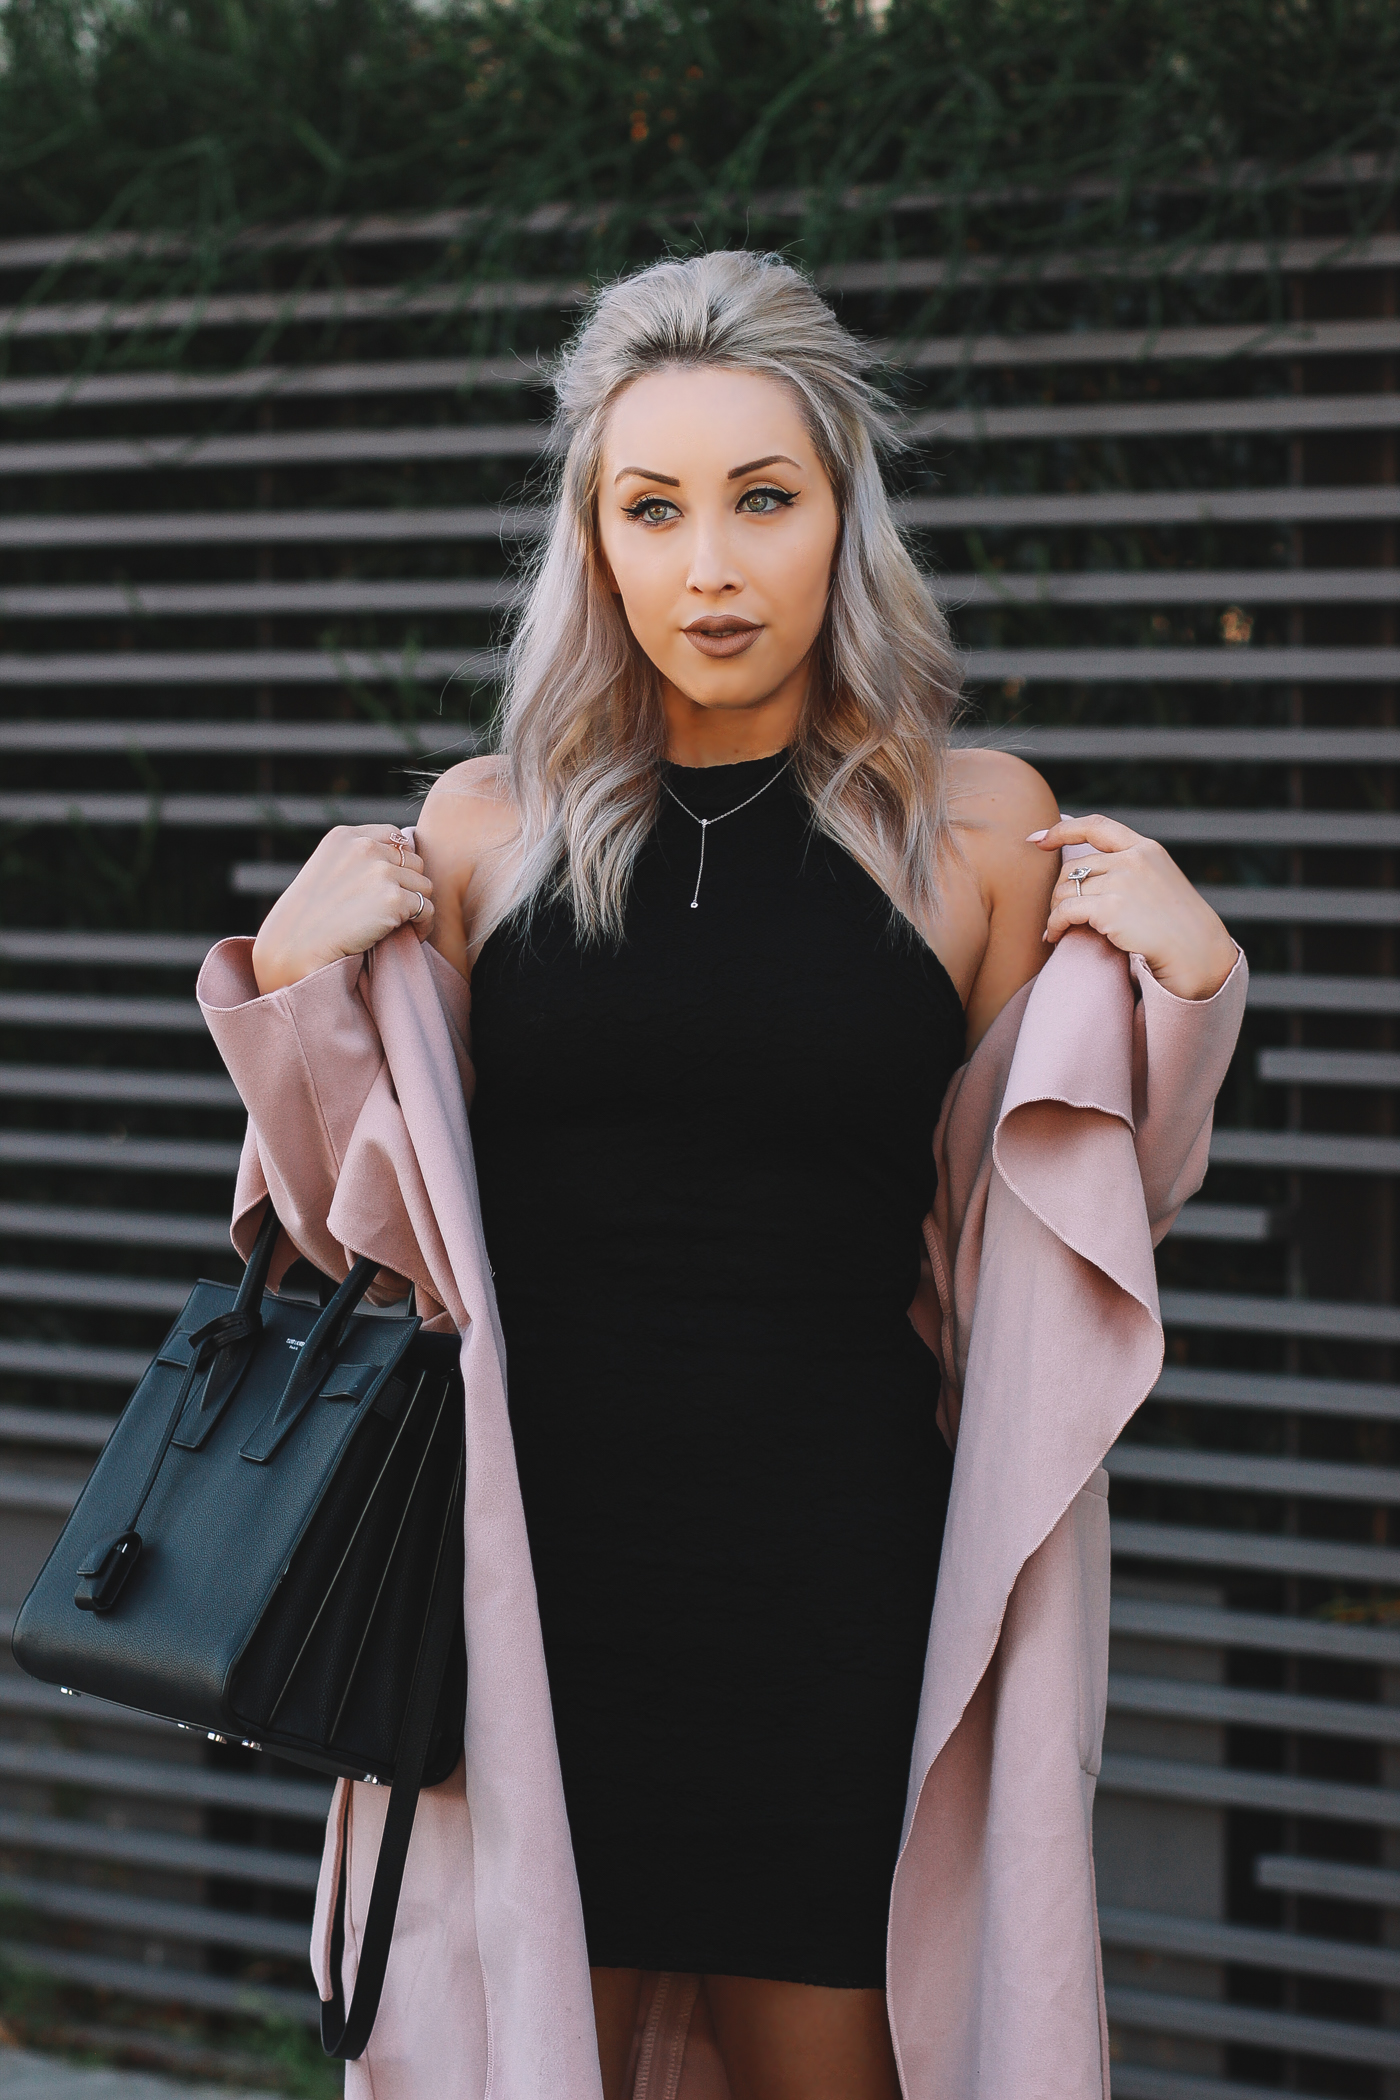 Blondie in the City | Busy Bride | Beverly Hills Street Style |